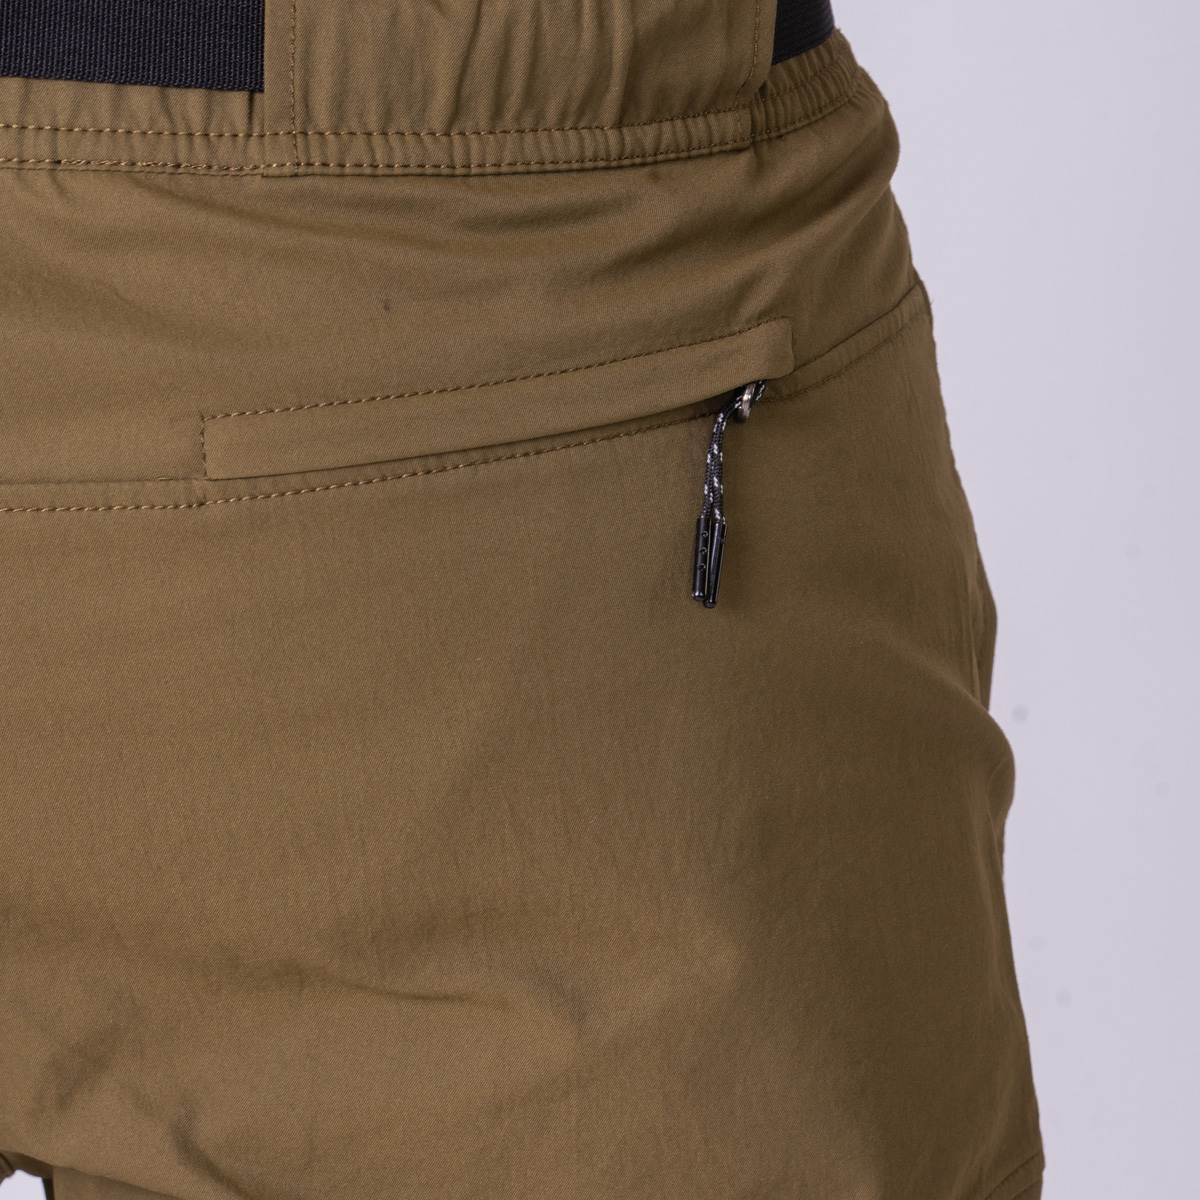 Function Cargo 9 inch Shorts for Men in Olive | Gym Aesthetics